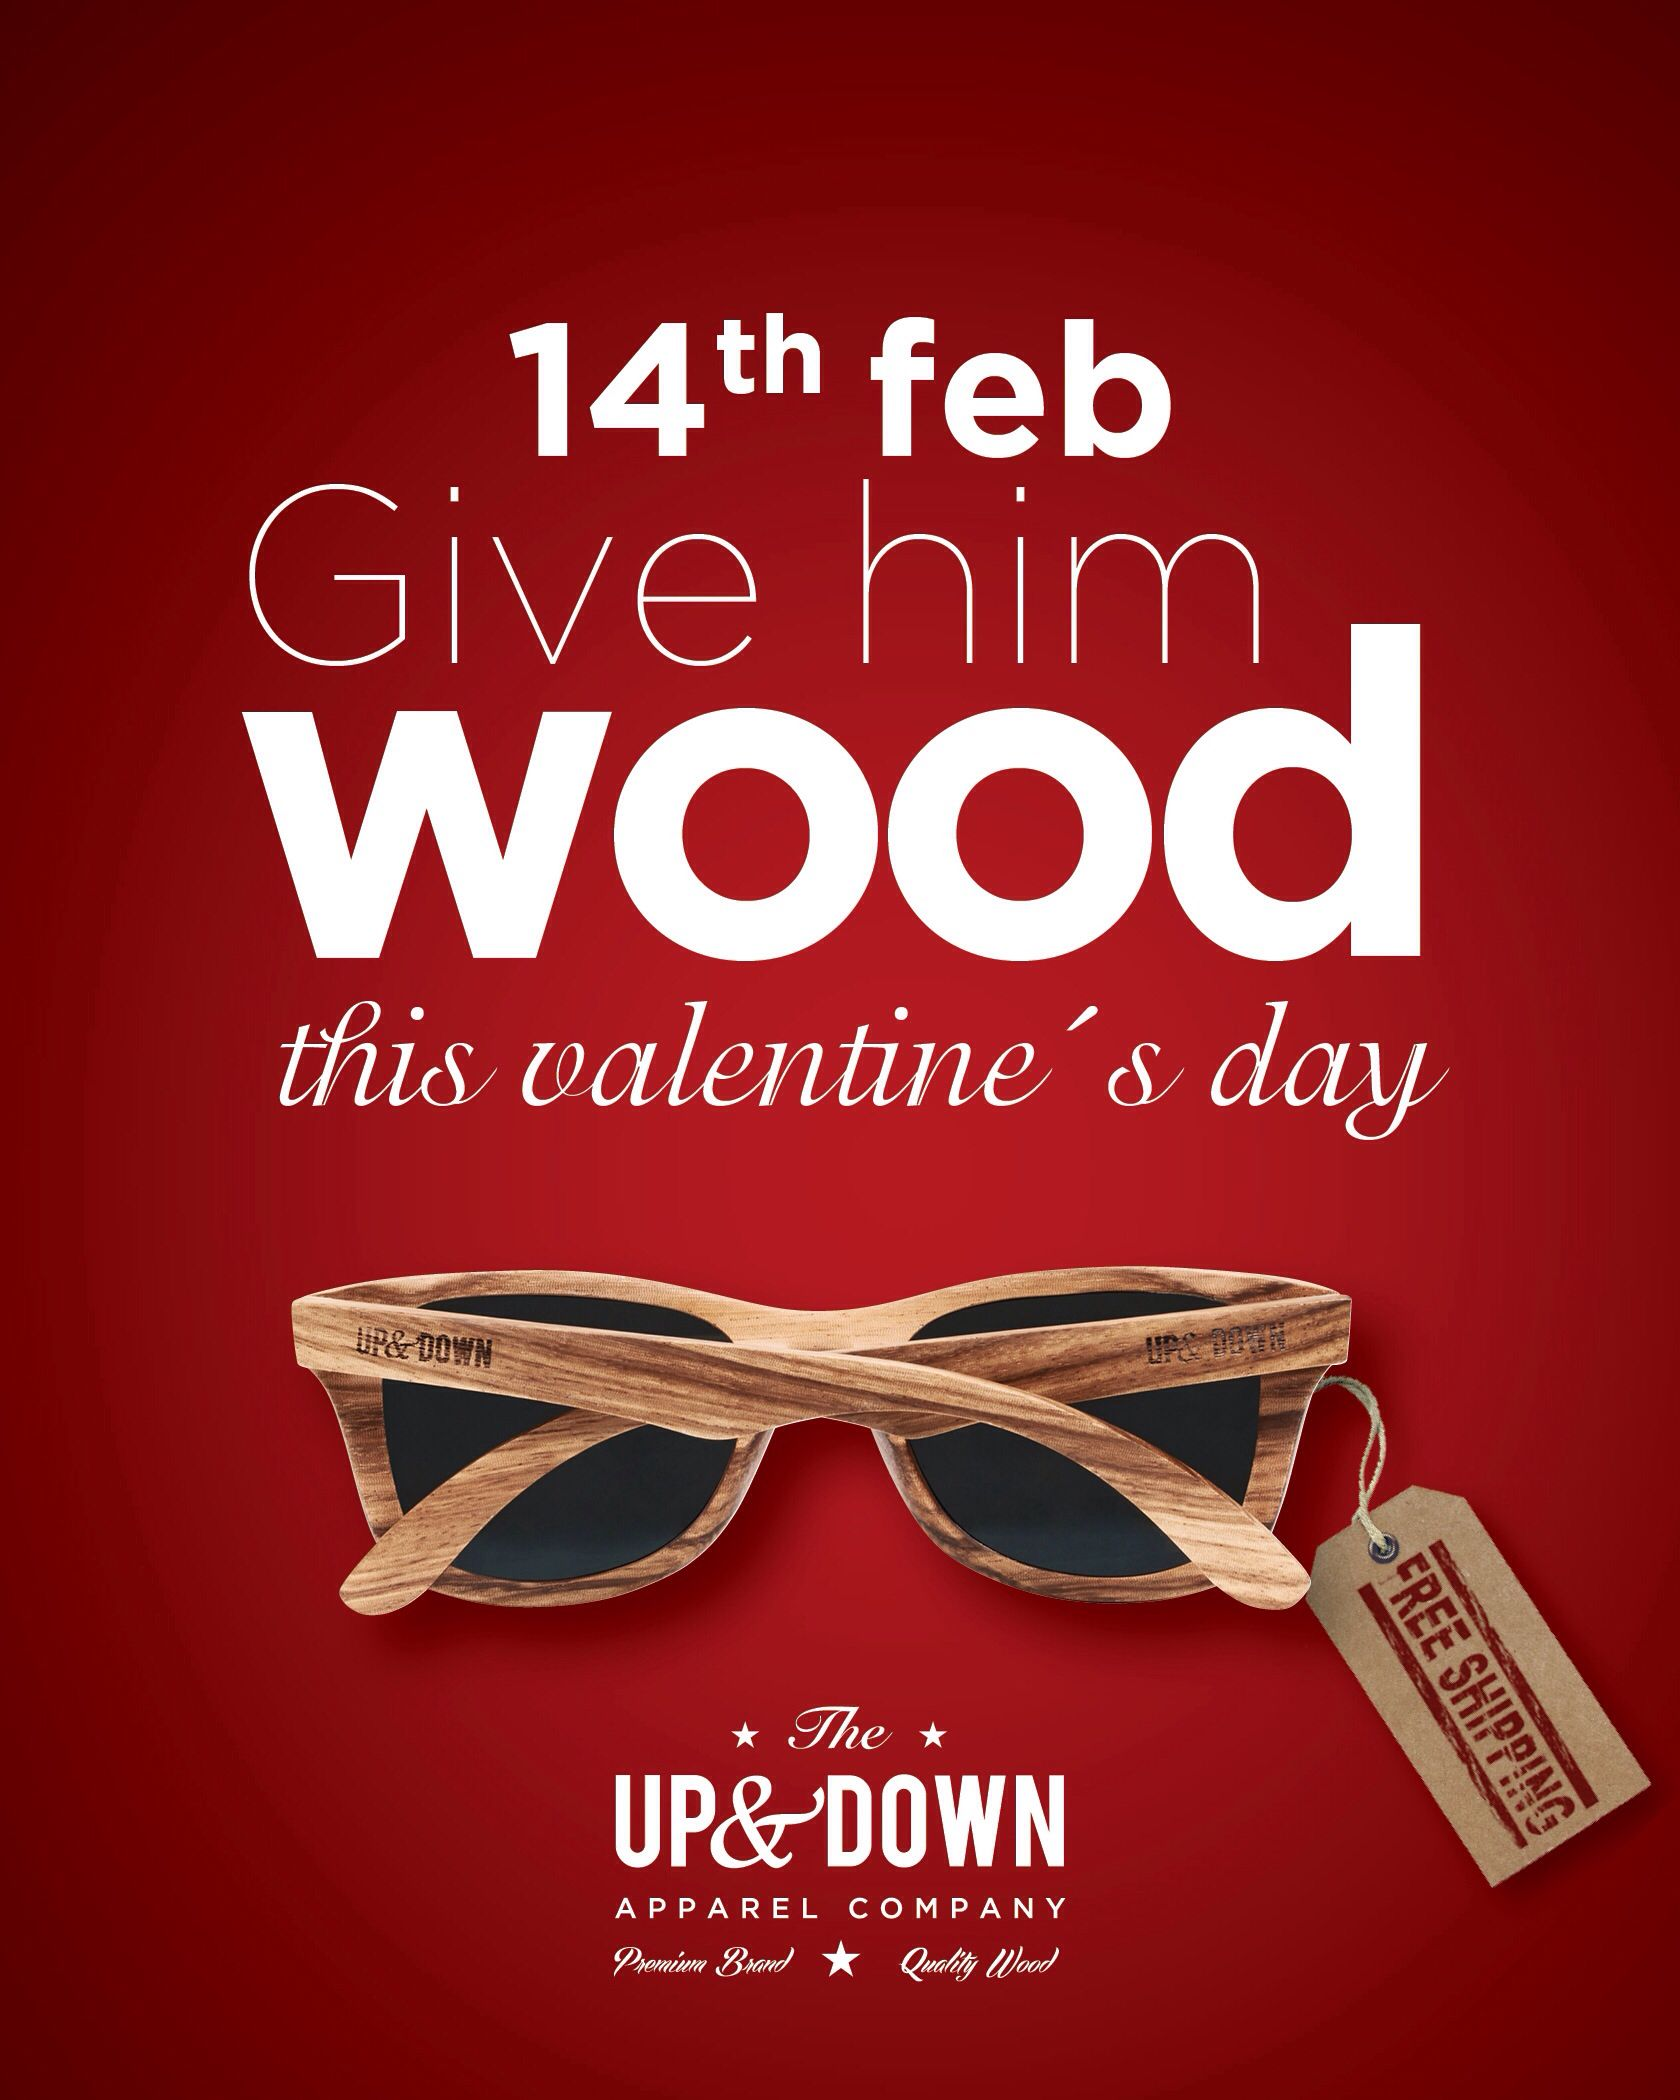 the first ad for updown for valentines day